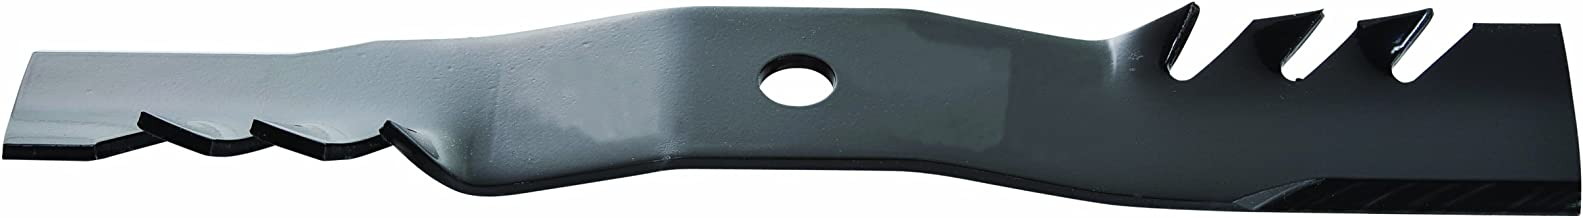 Oregon 96-354 Mulcher 3-In-1 Hi-Lift Replacement Lawn Mower Blade 17-Inch